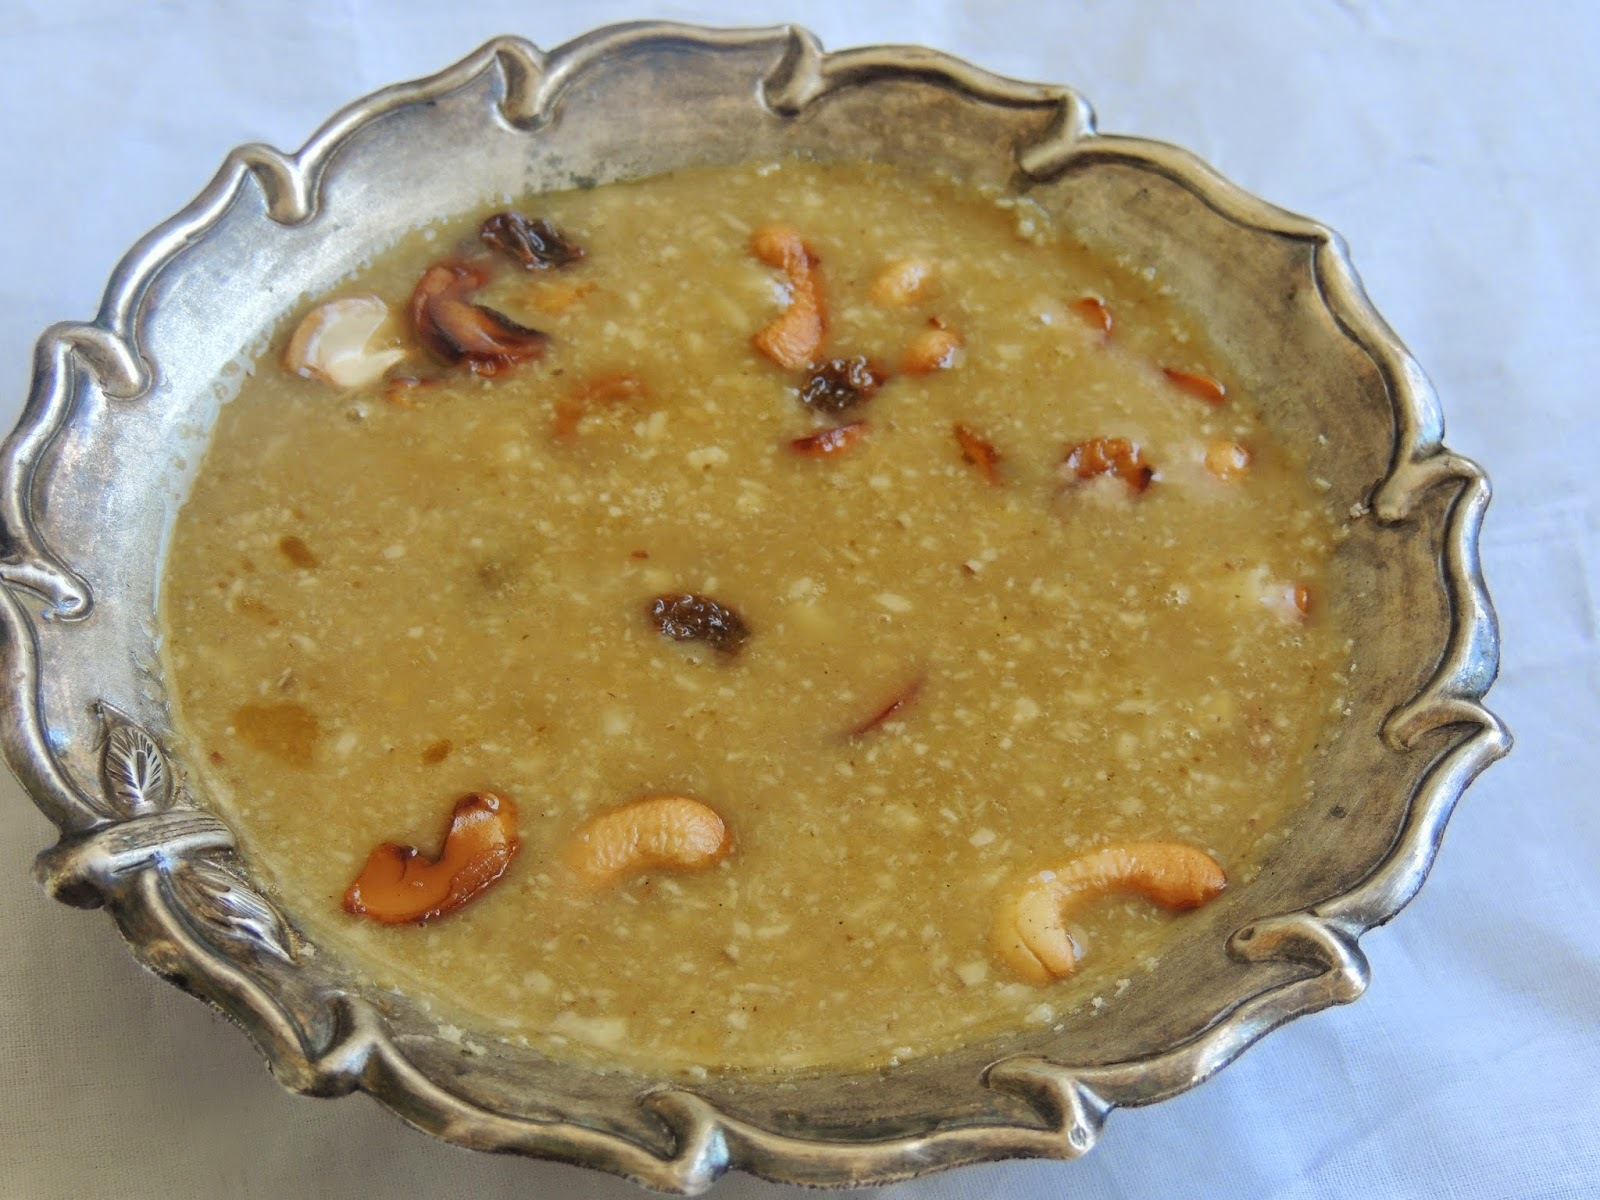 MOONGDHAL COCONUT MILK PAYASAM